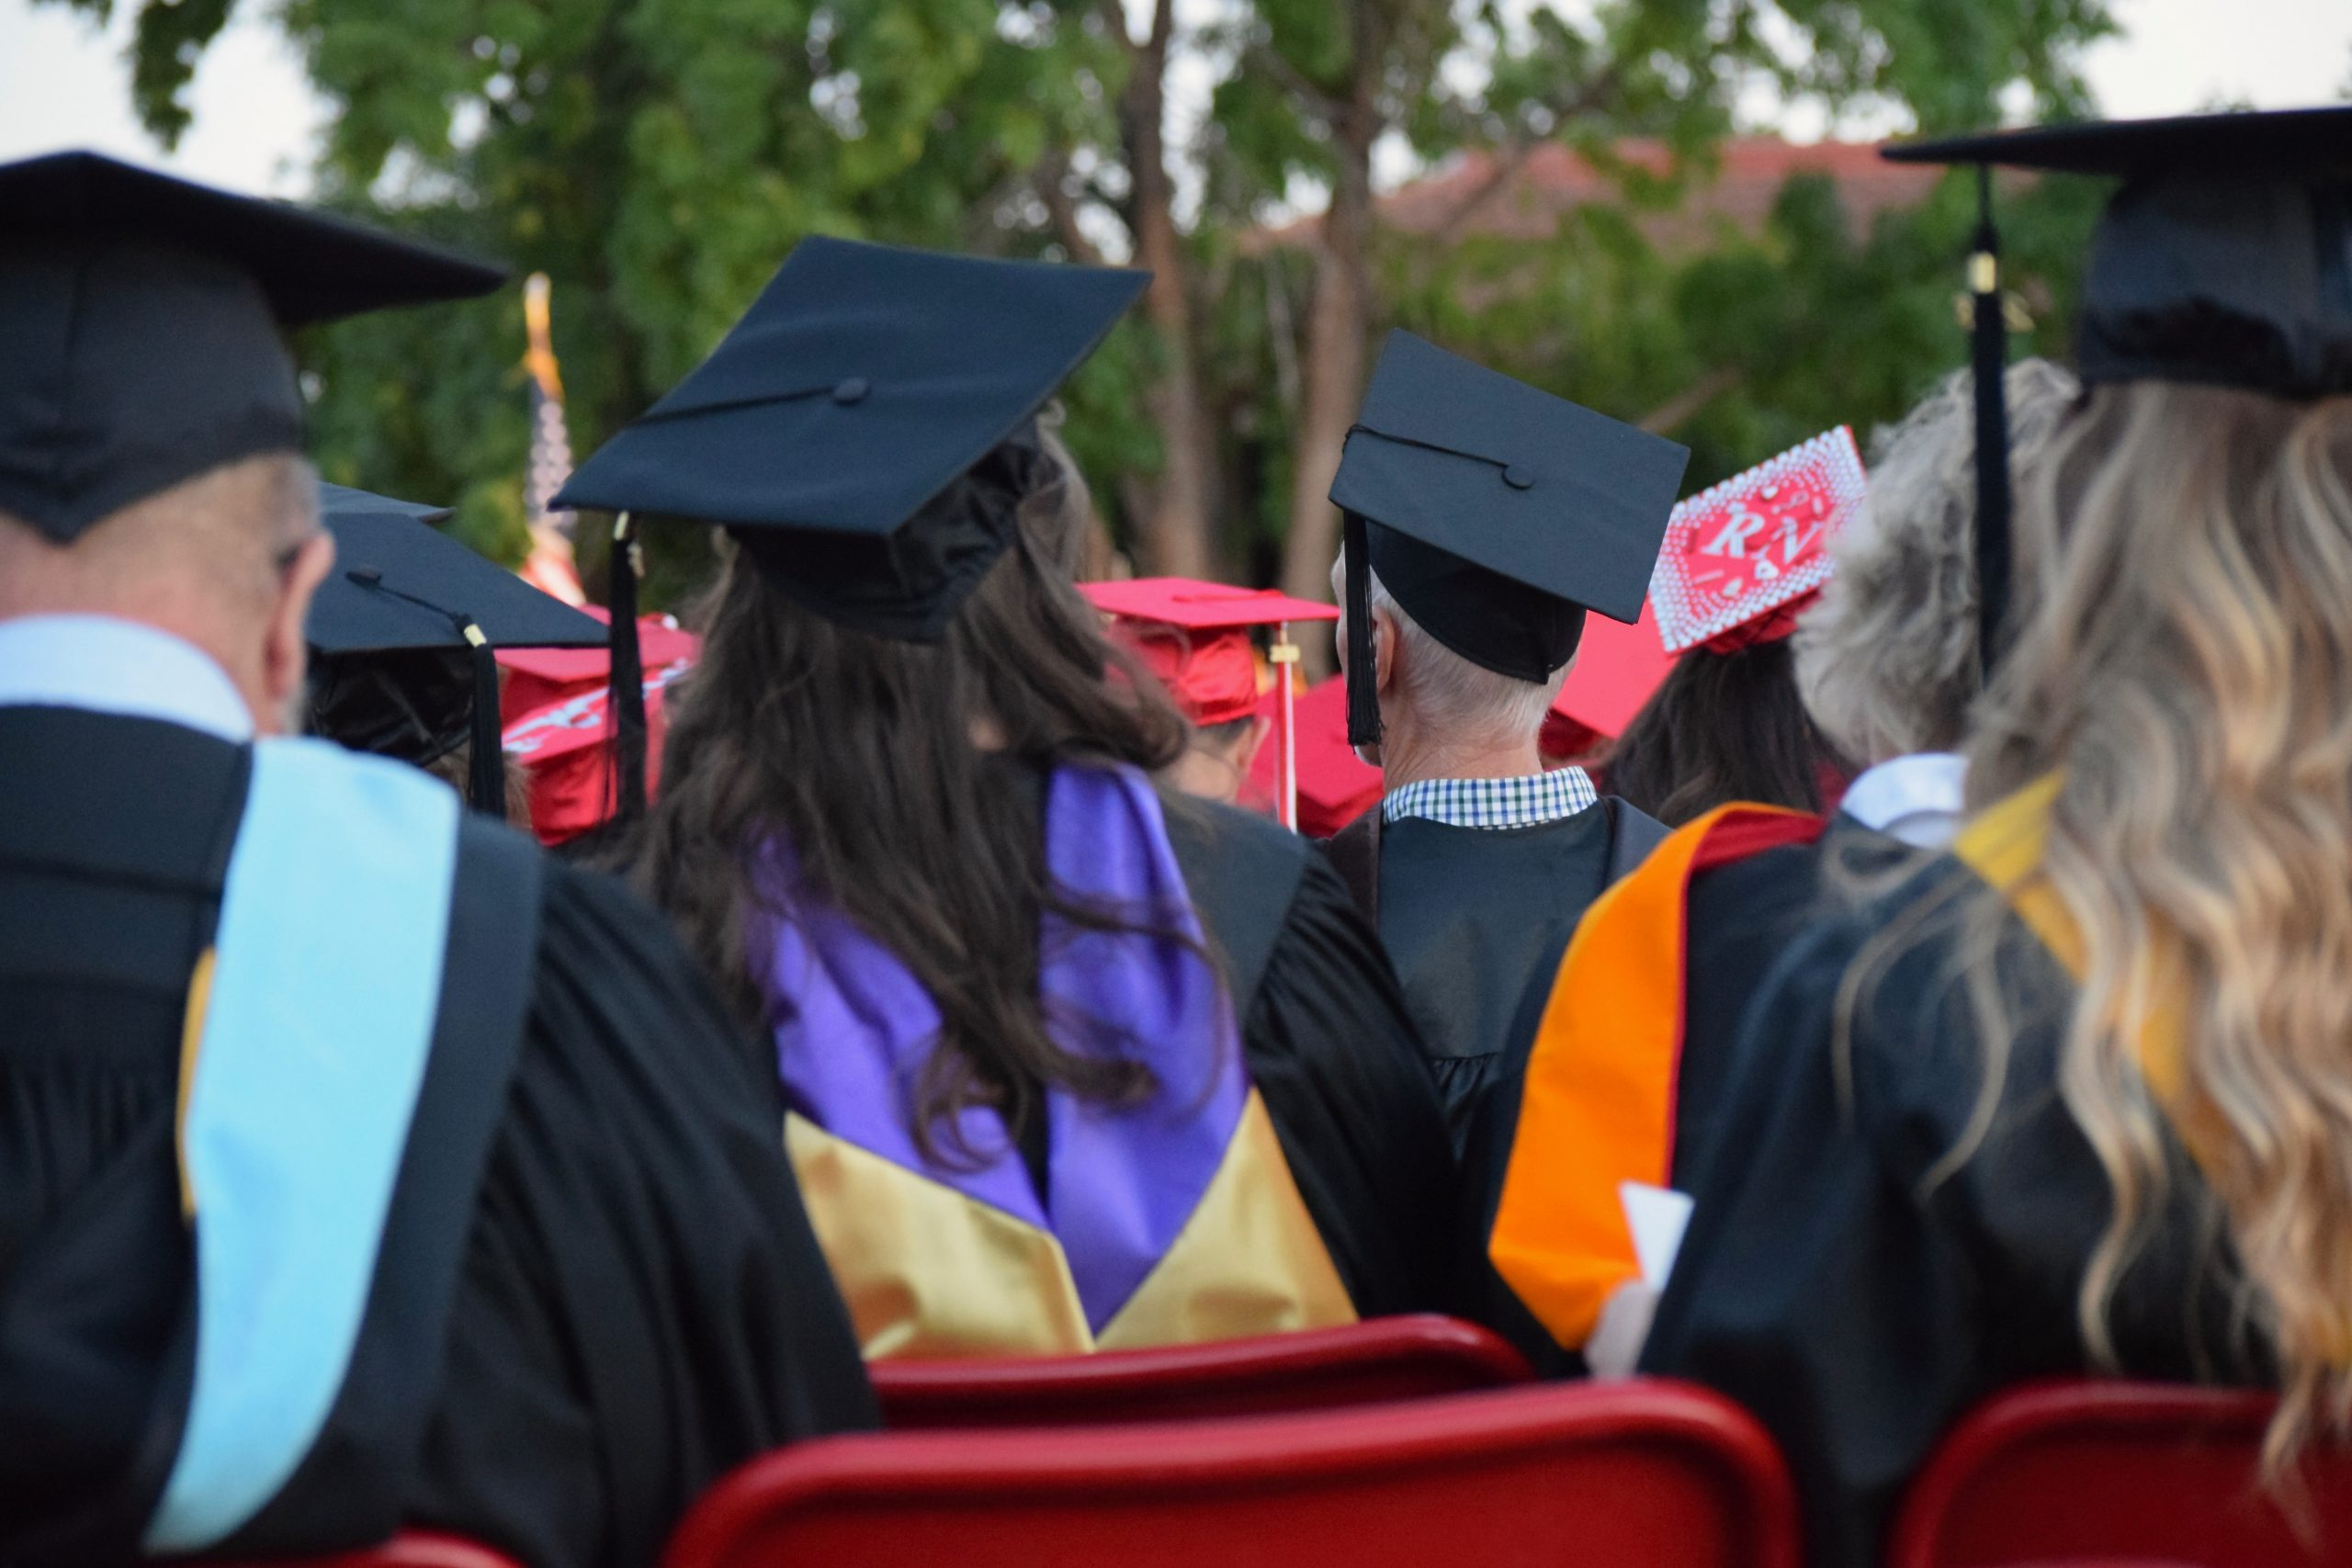 Vaughn College Celebrates the Class of 2021 at 89th Commencement